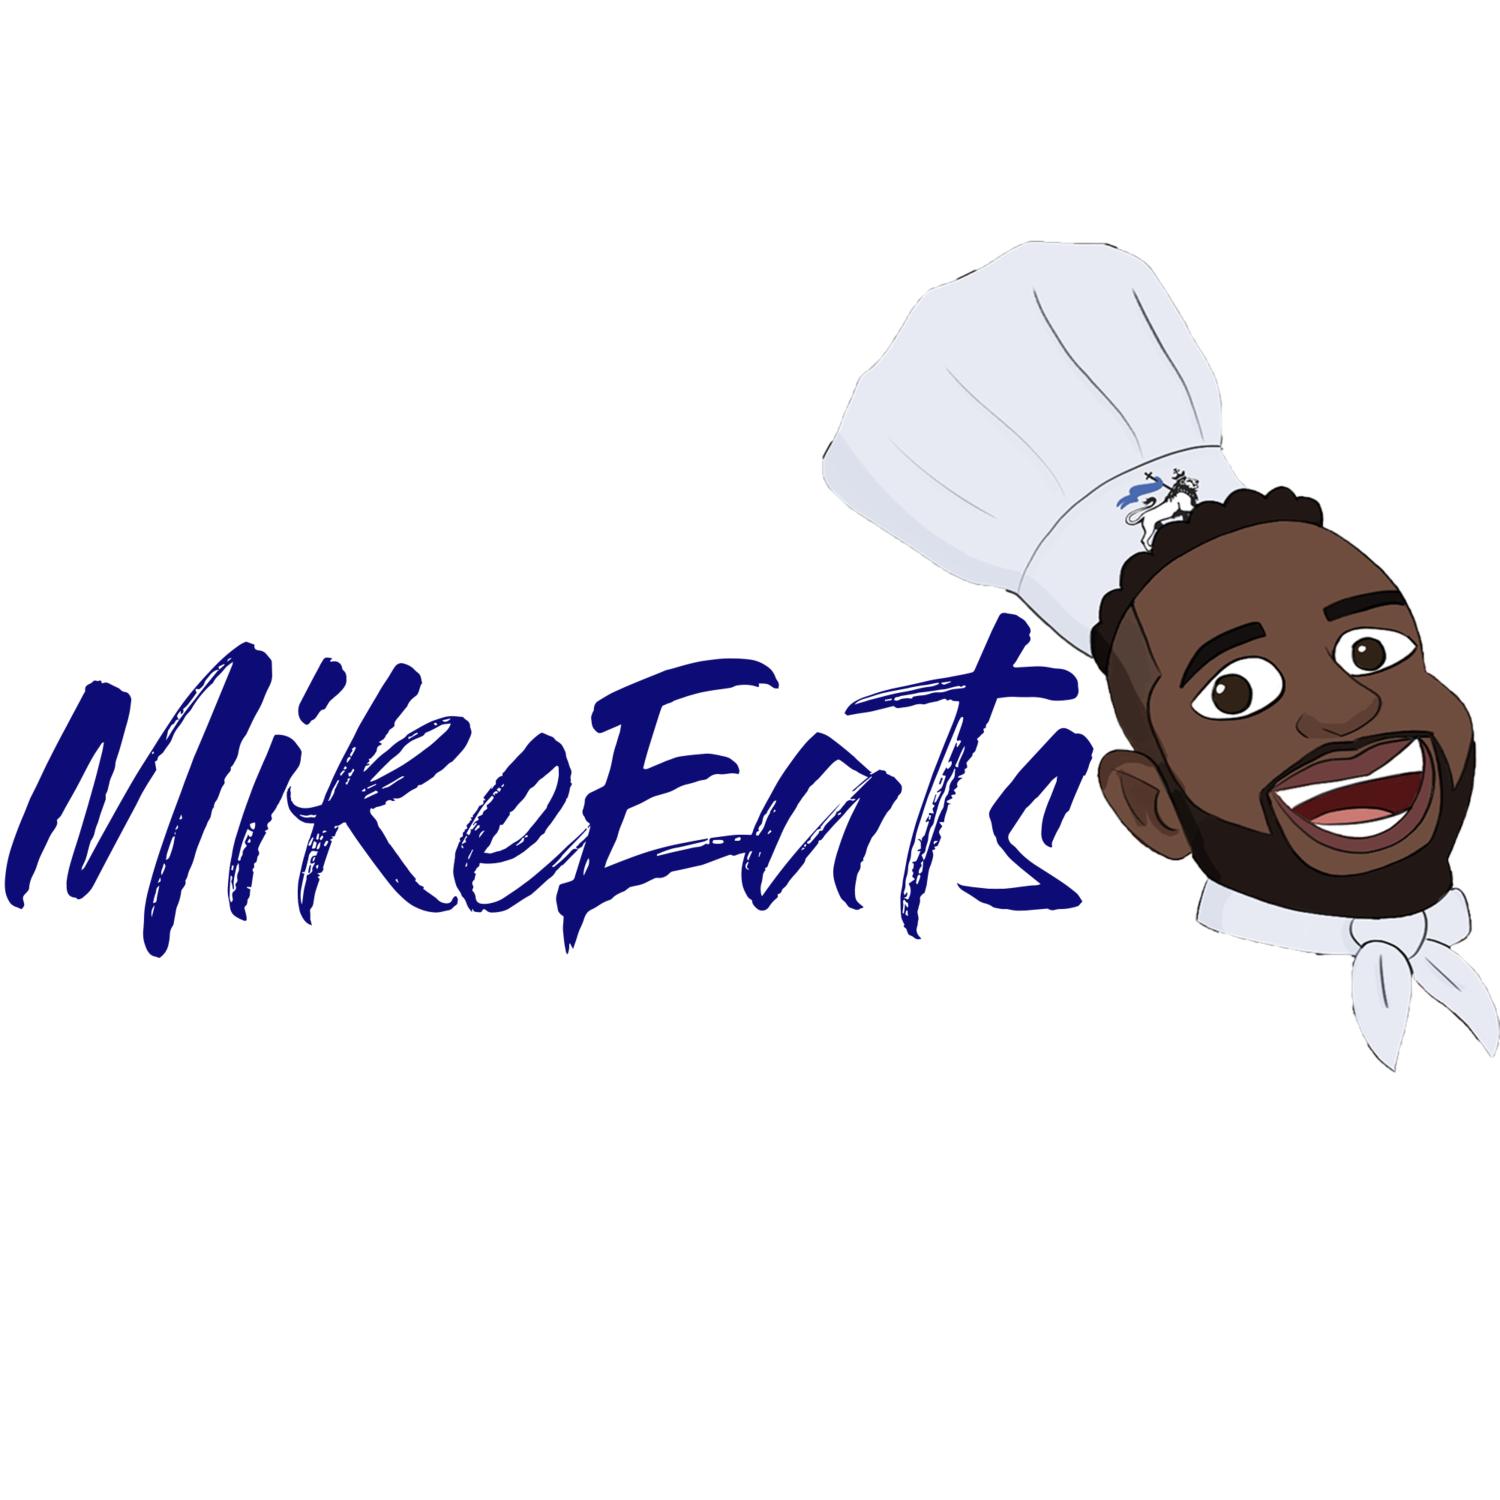 MikeEats